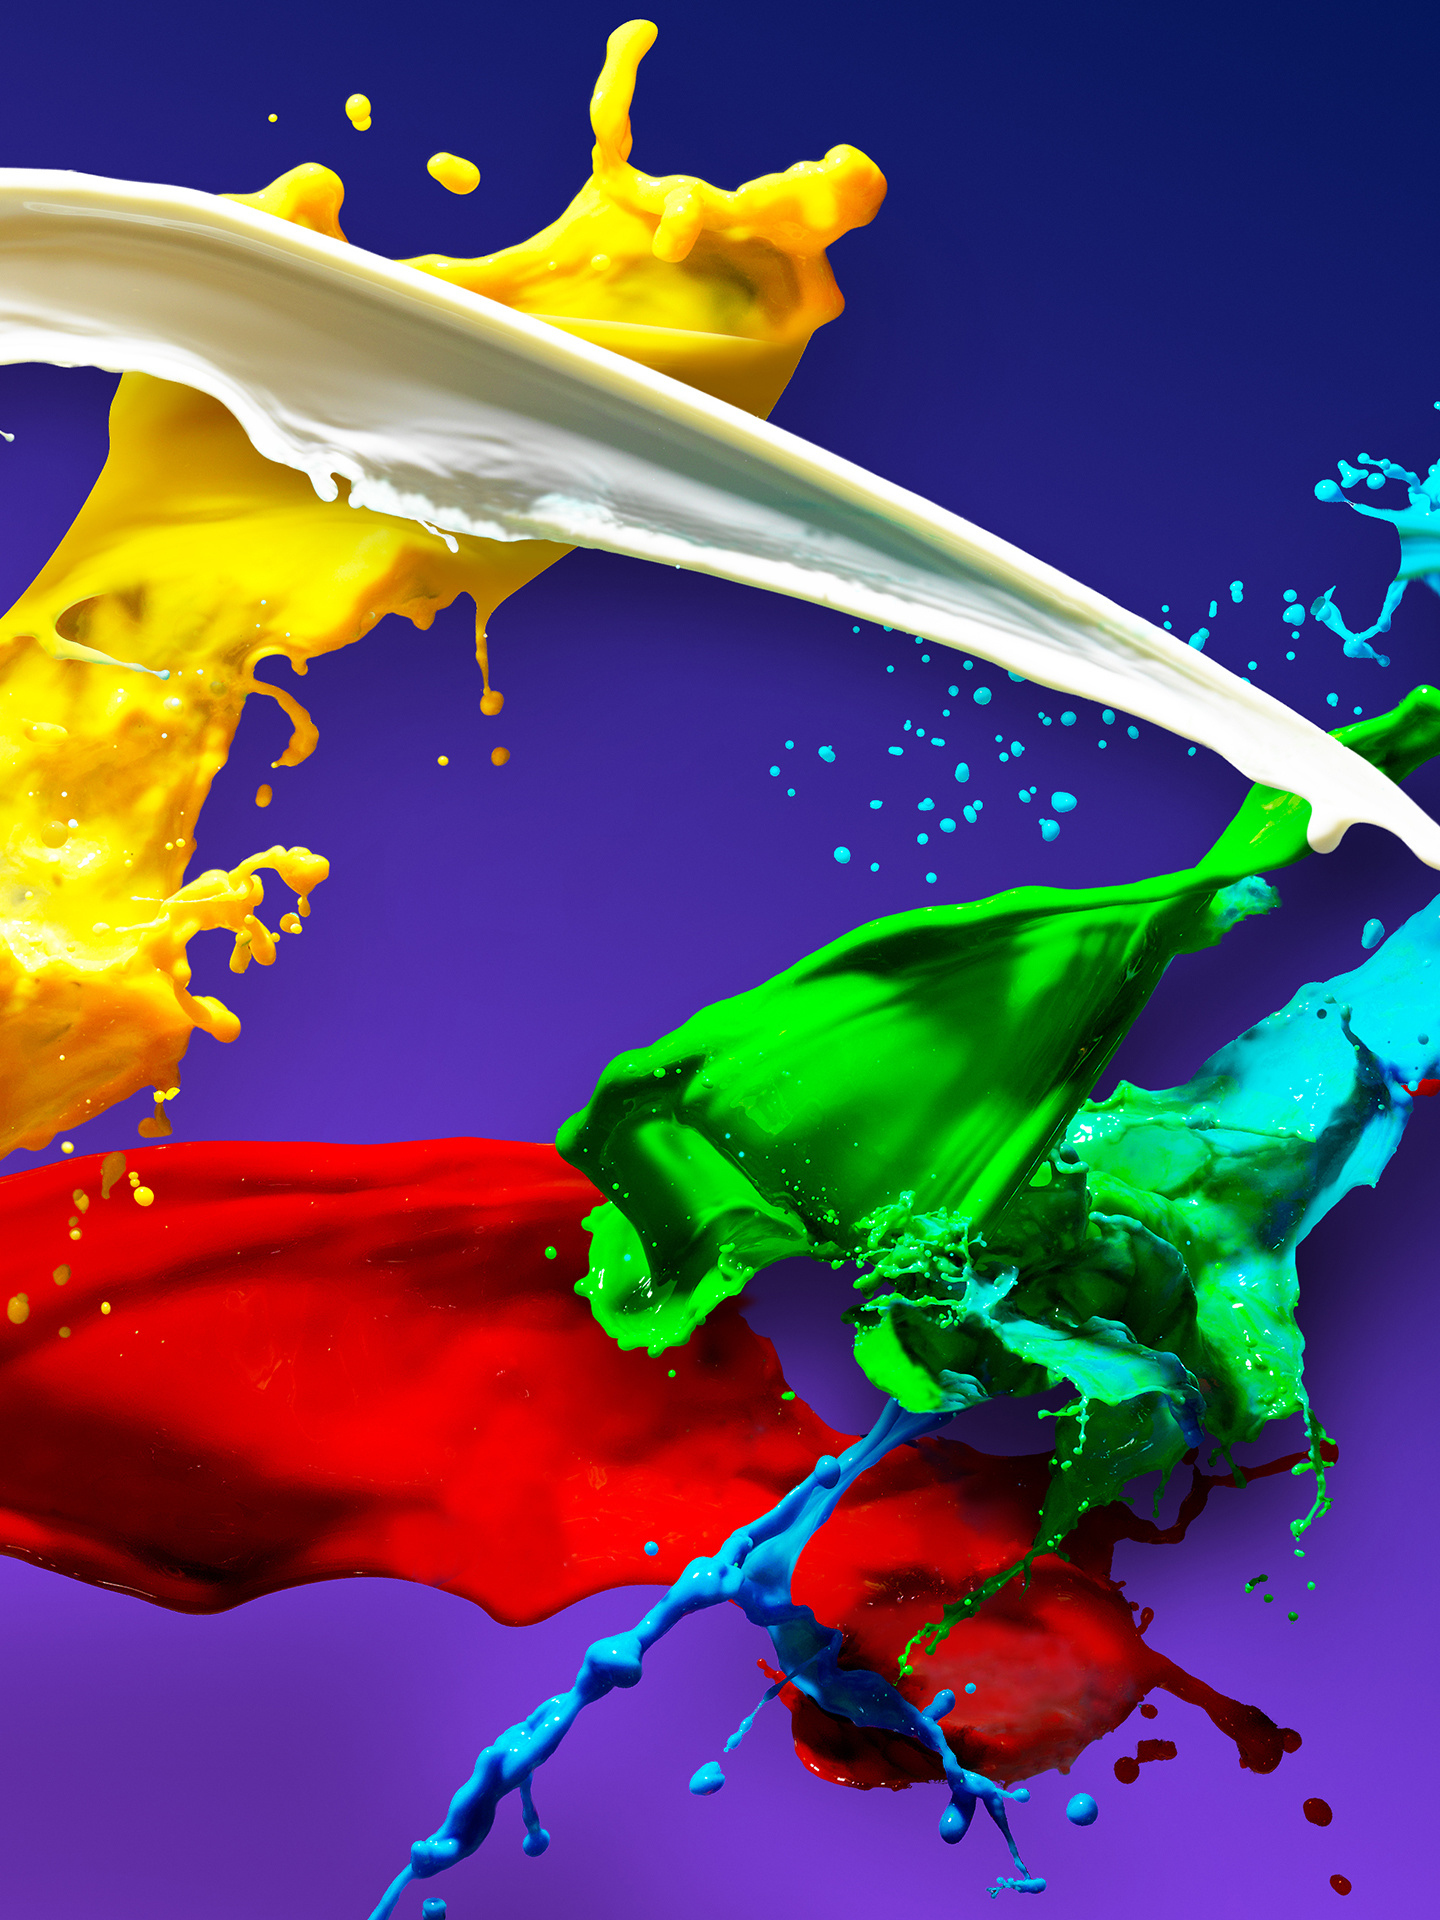 Download 1440x2960 Wallpaper Colors Splashes Colorful